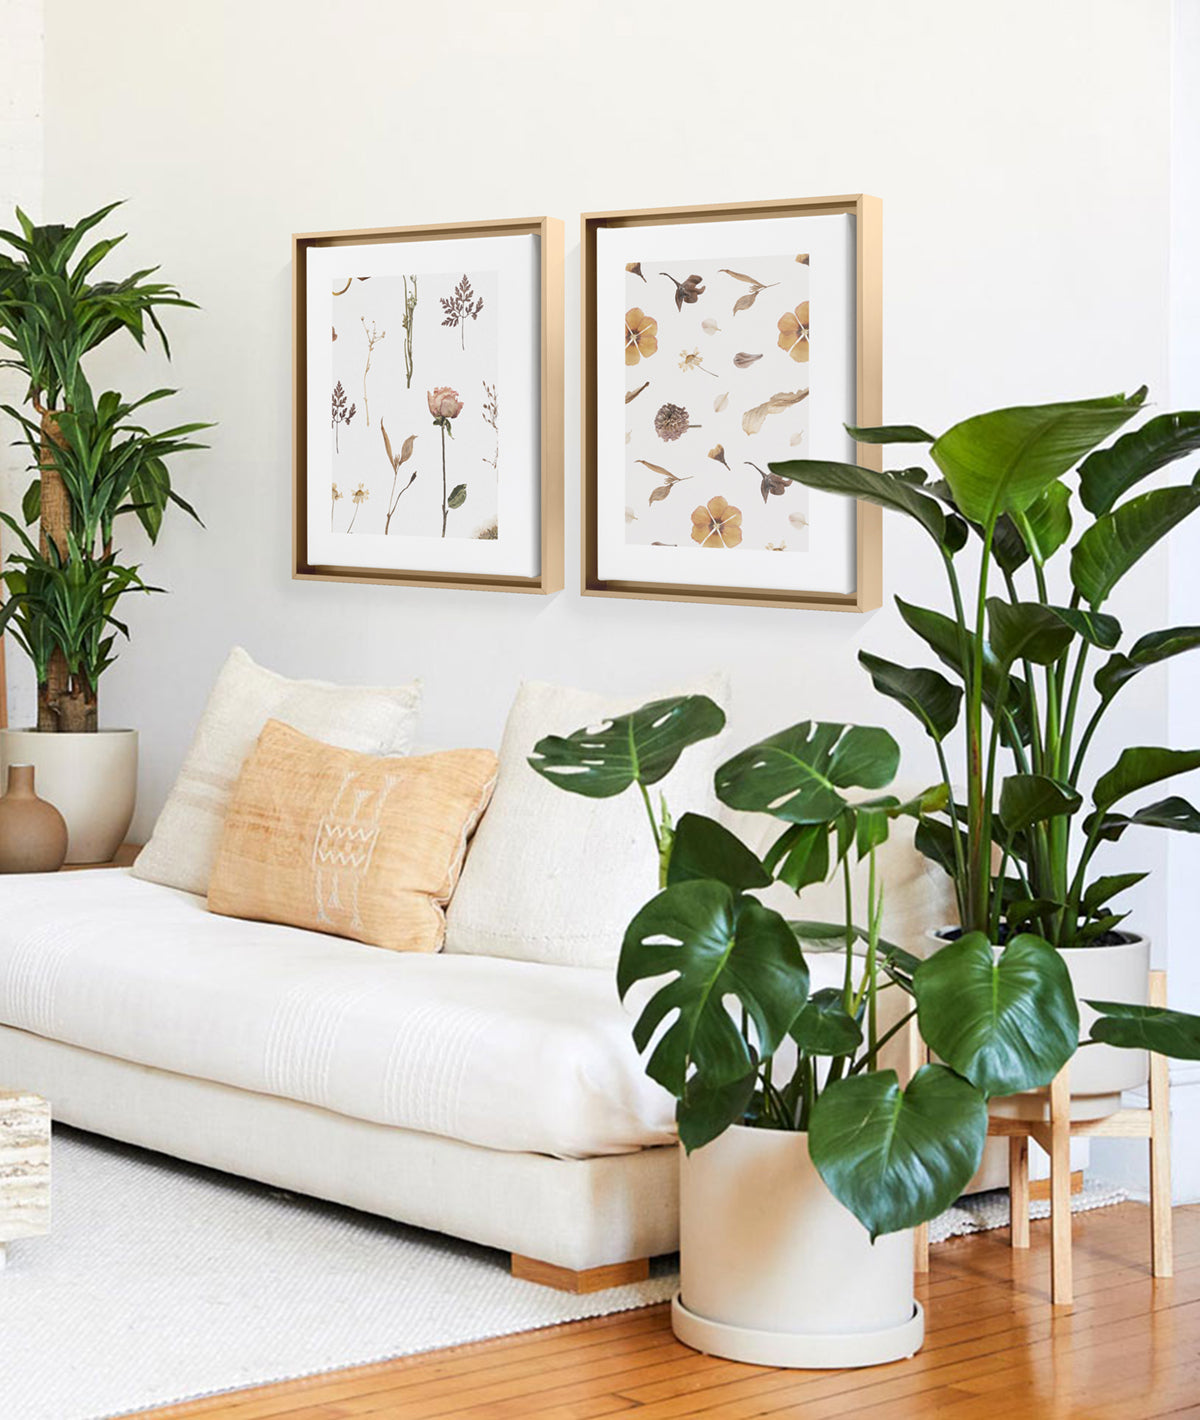 large floor plants next to couch